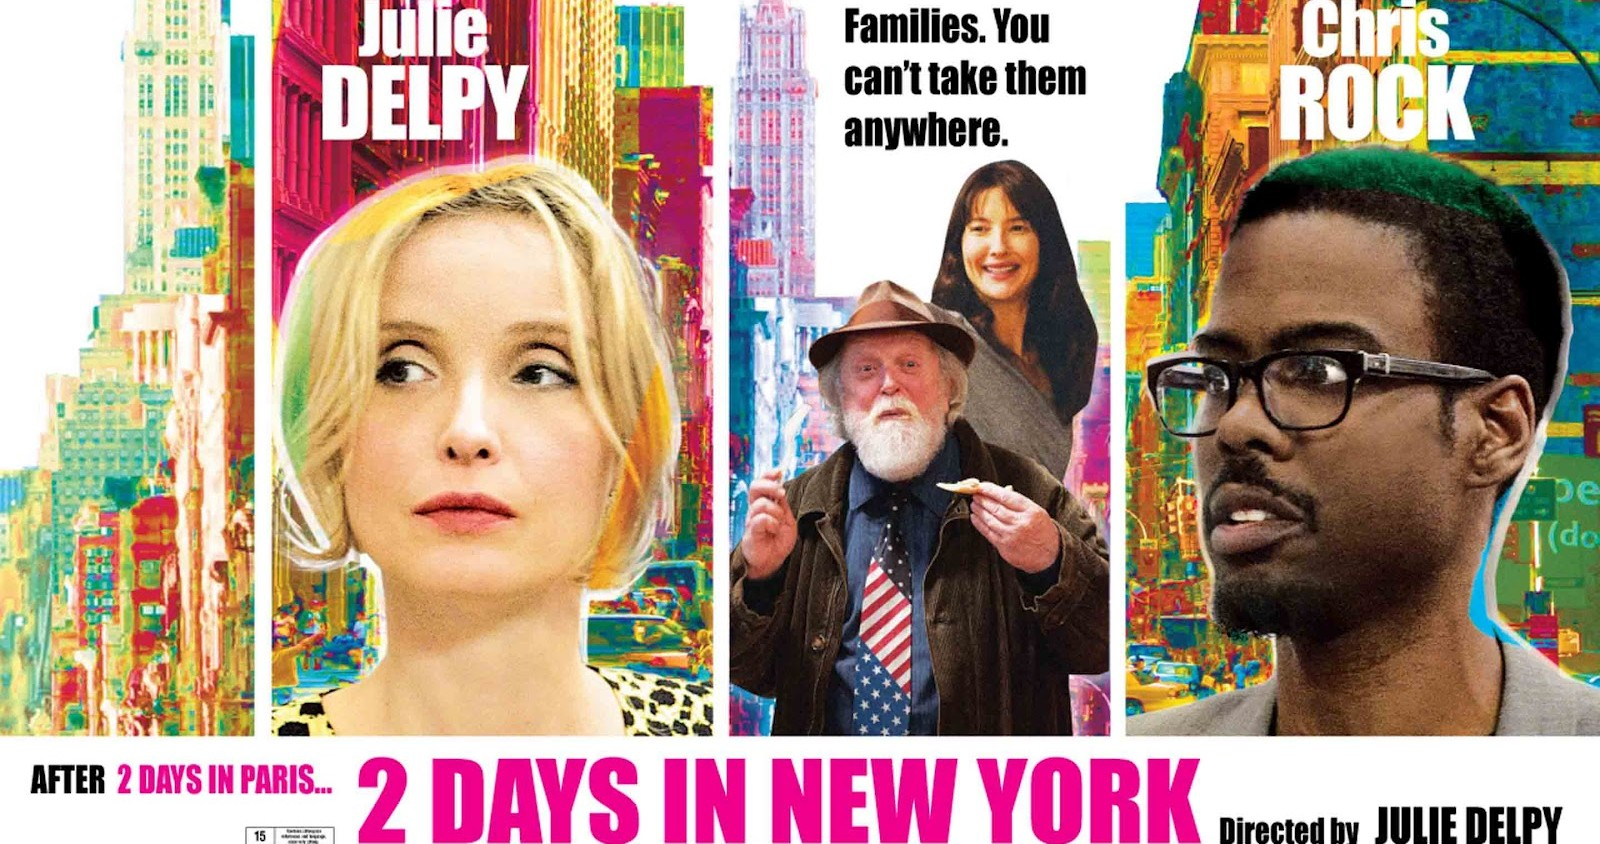 2-days-in-new-york-film-poster-e1338778762571.jpg